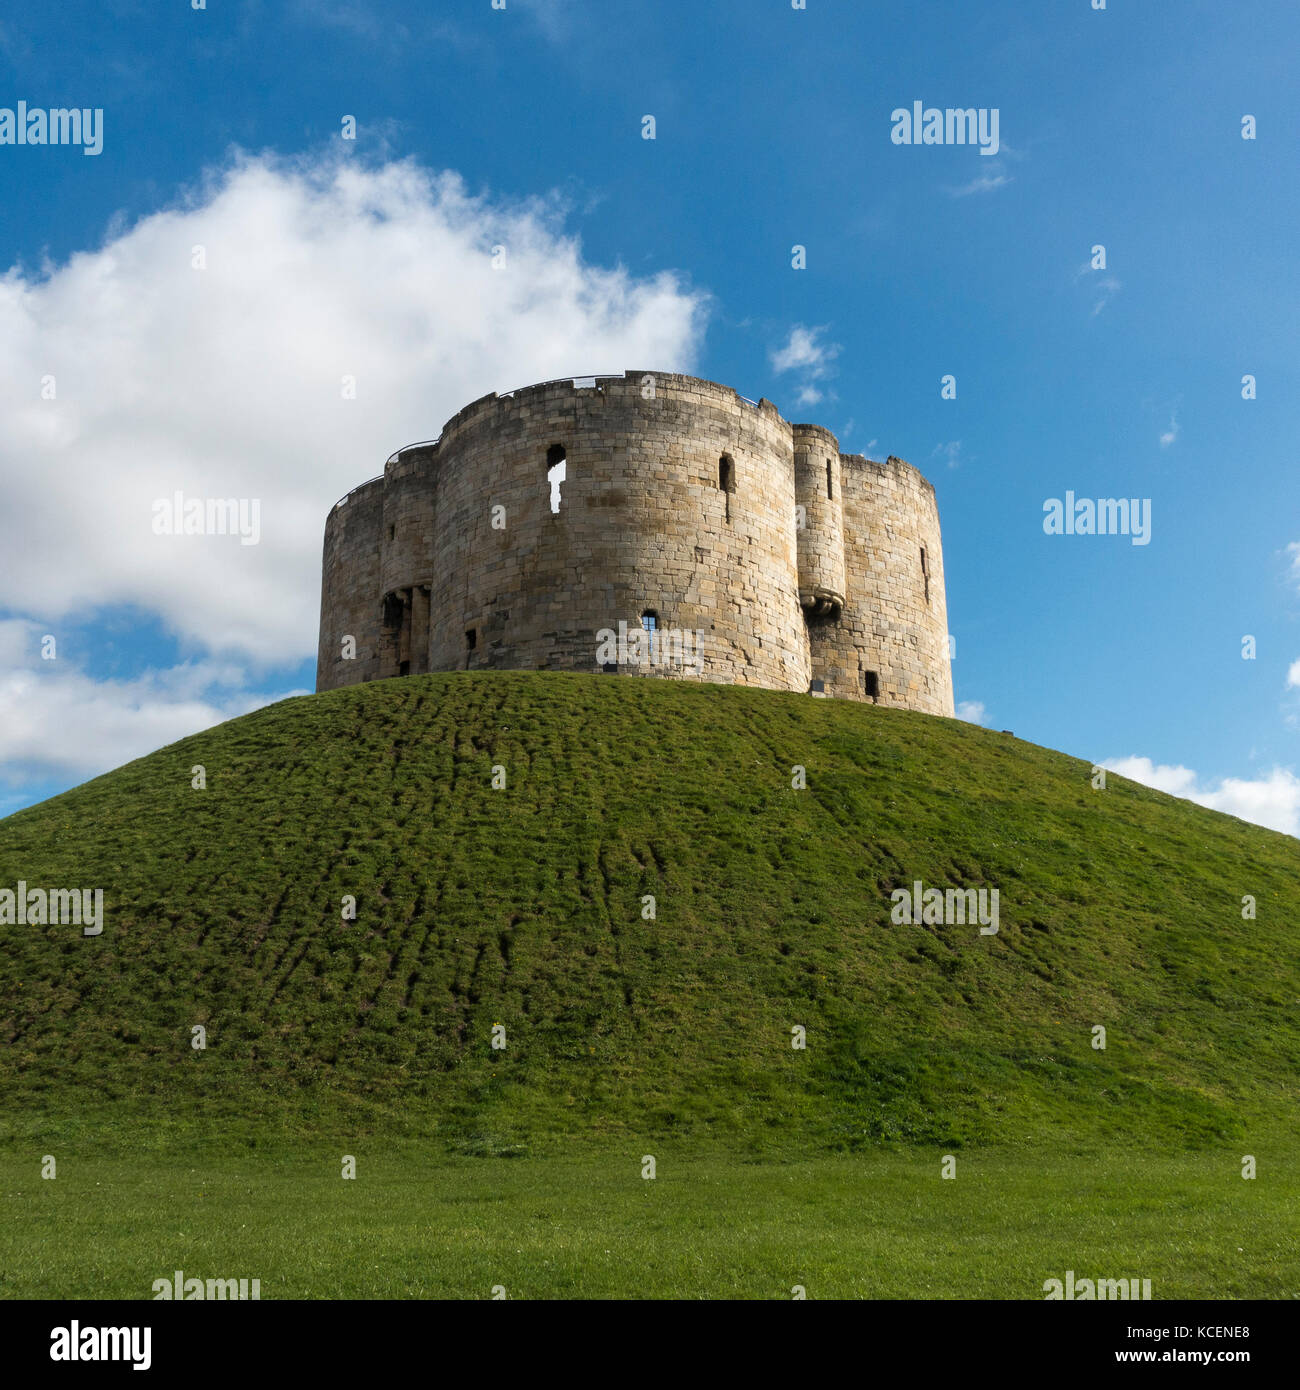 Sunny Autumn Day With Bright Blue Sky, Over Well Known Historic Landmark,  Cliffordu0027s Tower High On Grassy Mound   York, North Yorkshire, England, UK.